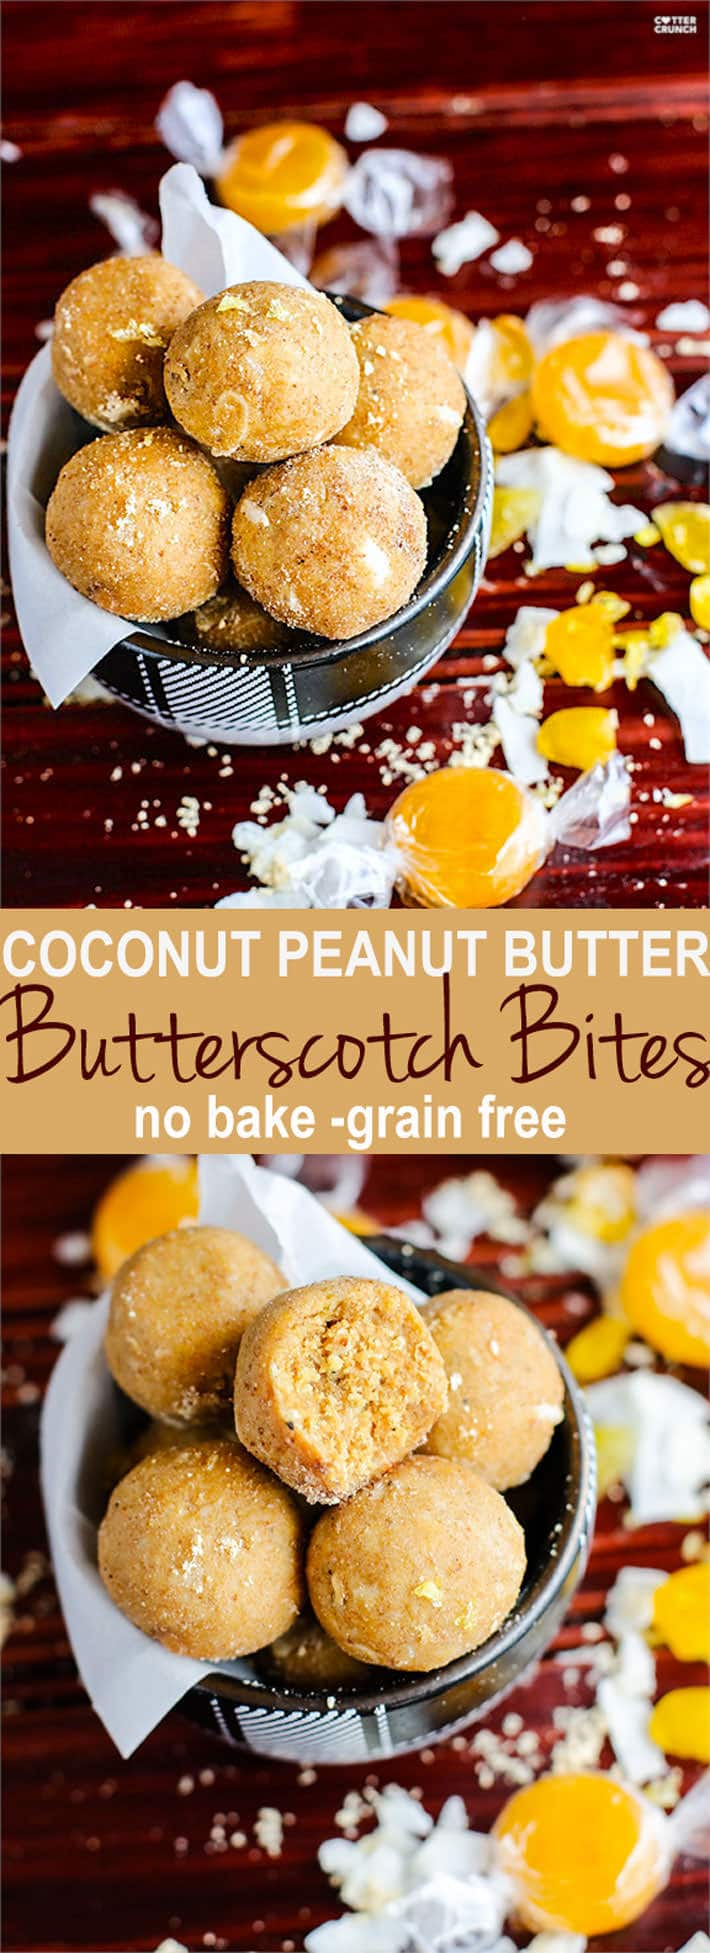 """Grain Free no bake coconut peanut butter butterscotch bites! These healthy energy bites are easy to make and made with natural ingredients! They are the perfect butterscotch """"candy"""" snack for Holiday parties. Make as a dessert, travel food, or just for satisfying a serious sugar craving! Gluten free and Vegan friendly."""